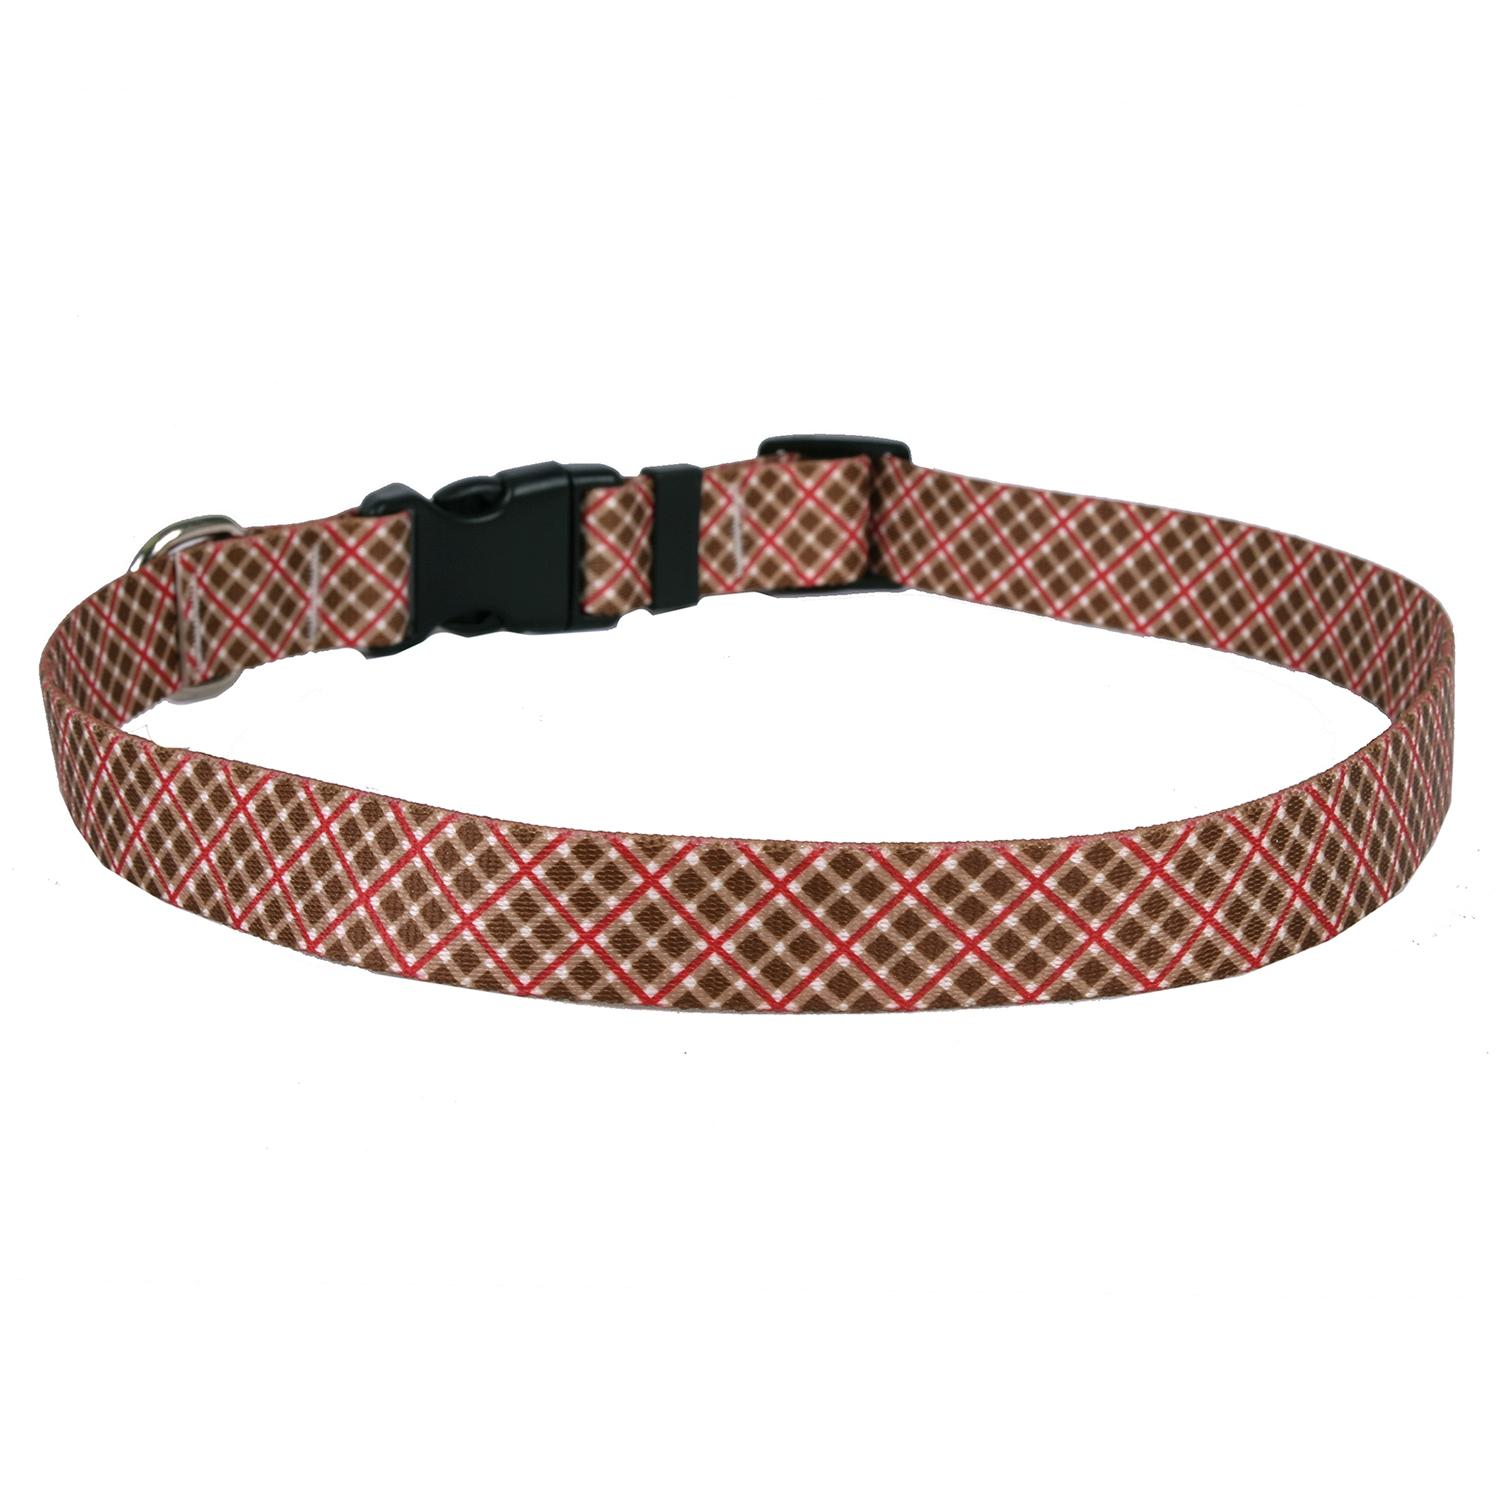 Diagonal Plaid Dog Collar by Yellow Dog - Brown and Red